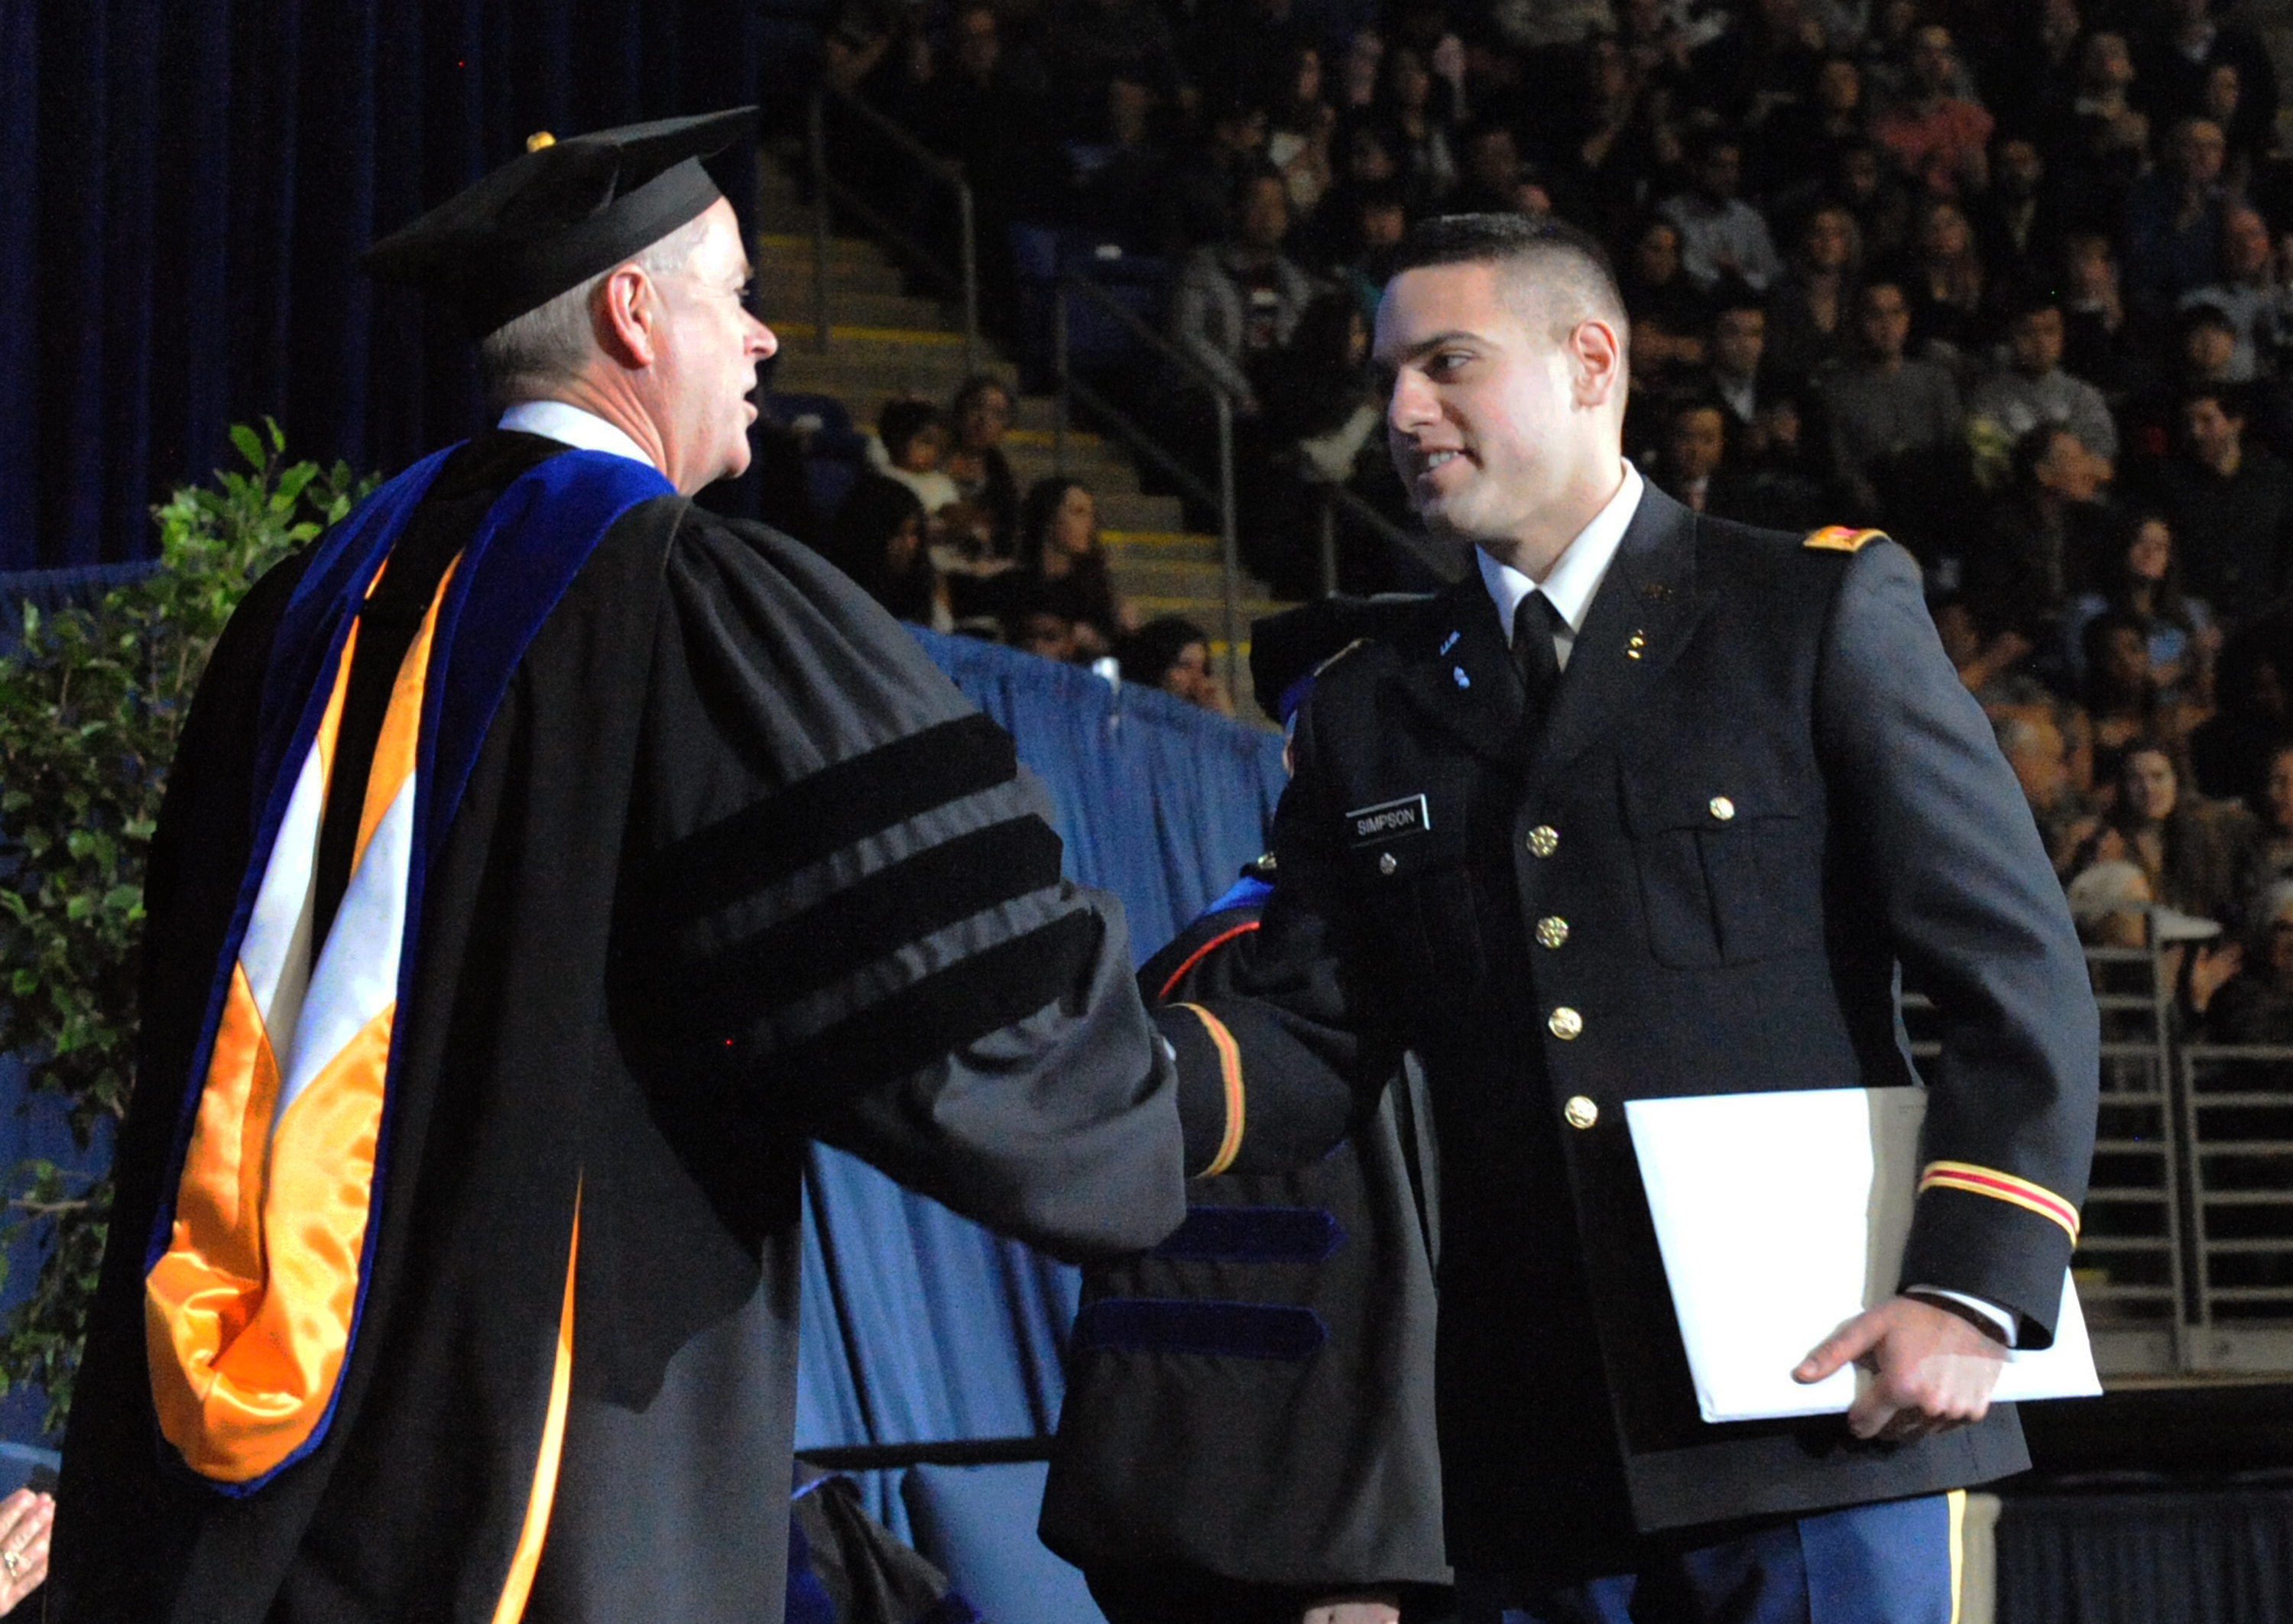 First Lieutenant / Student Marshal Shakes Hands with Vice Provost